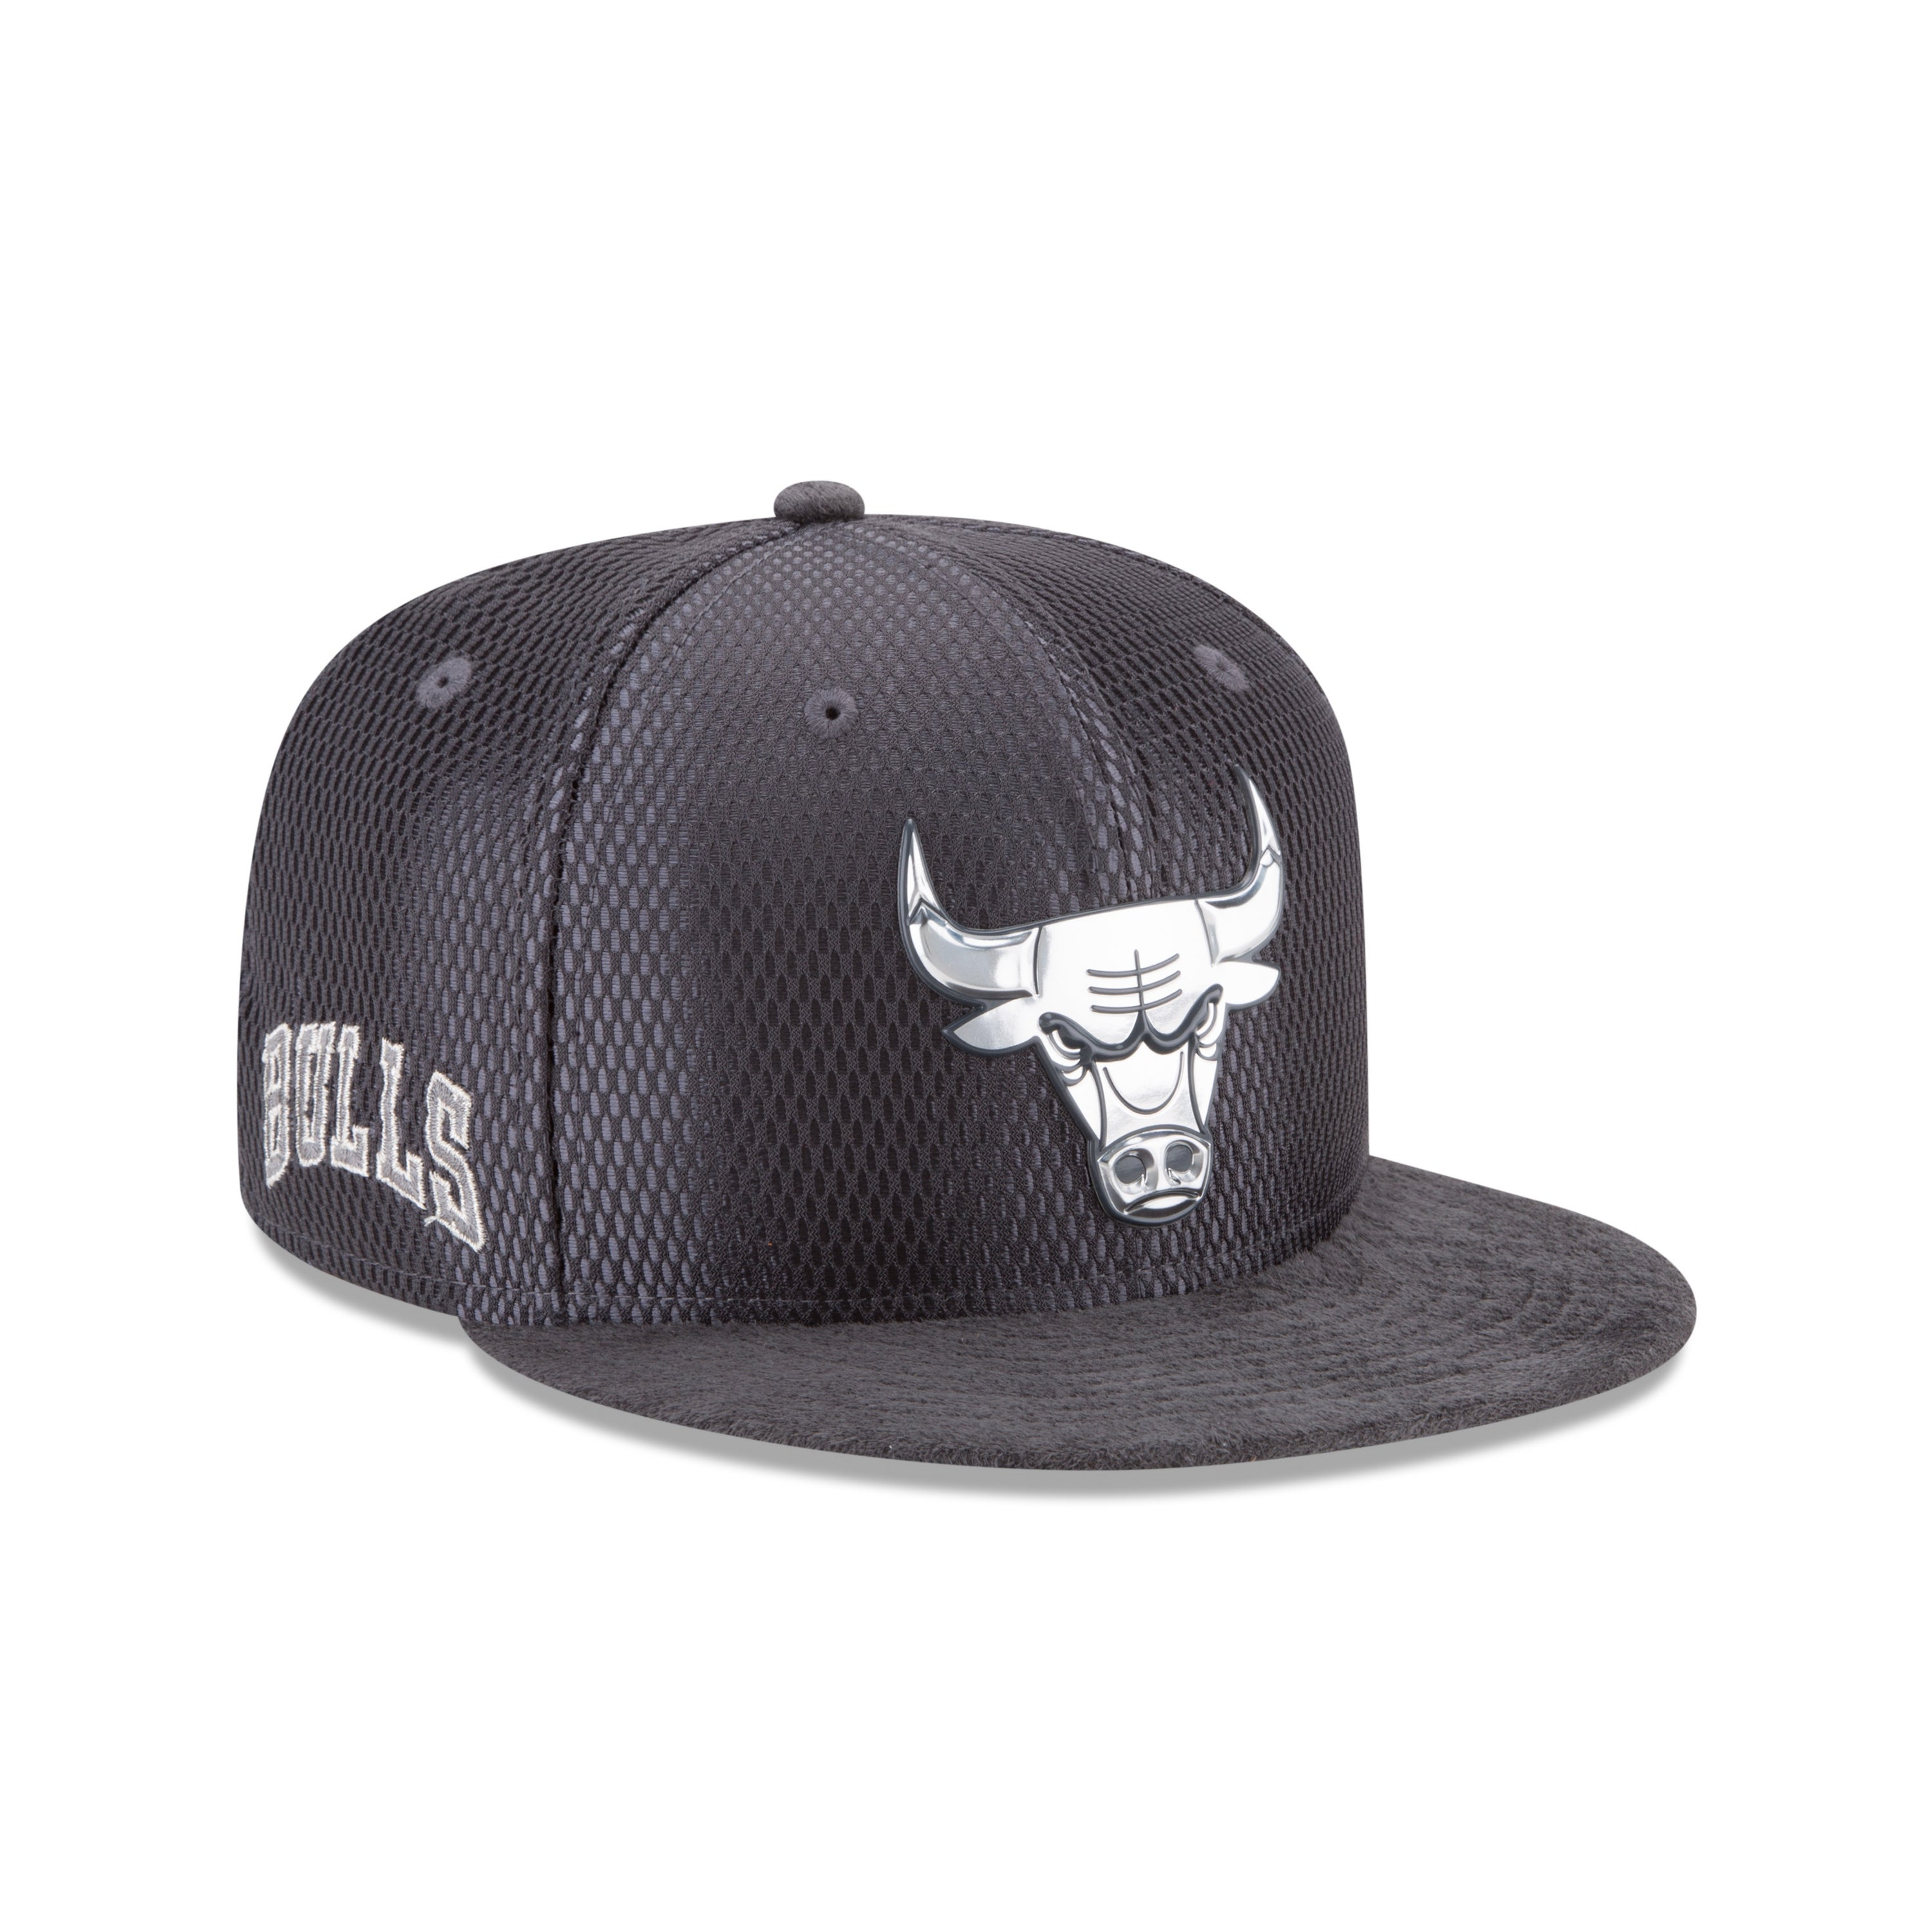 ee597948f0f Shop Chicago Bulls 2017 On Court 9FIFTY Grey Snapback Hat - Free Shipping  On Orders Over  45 - Overstock - 18682109